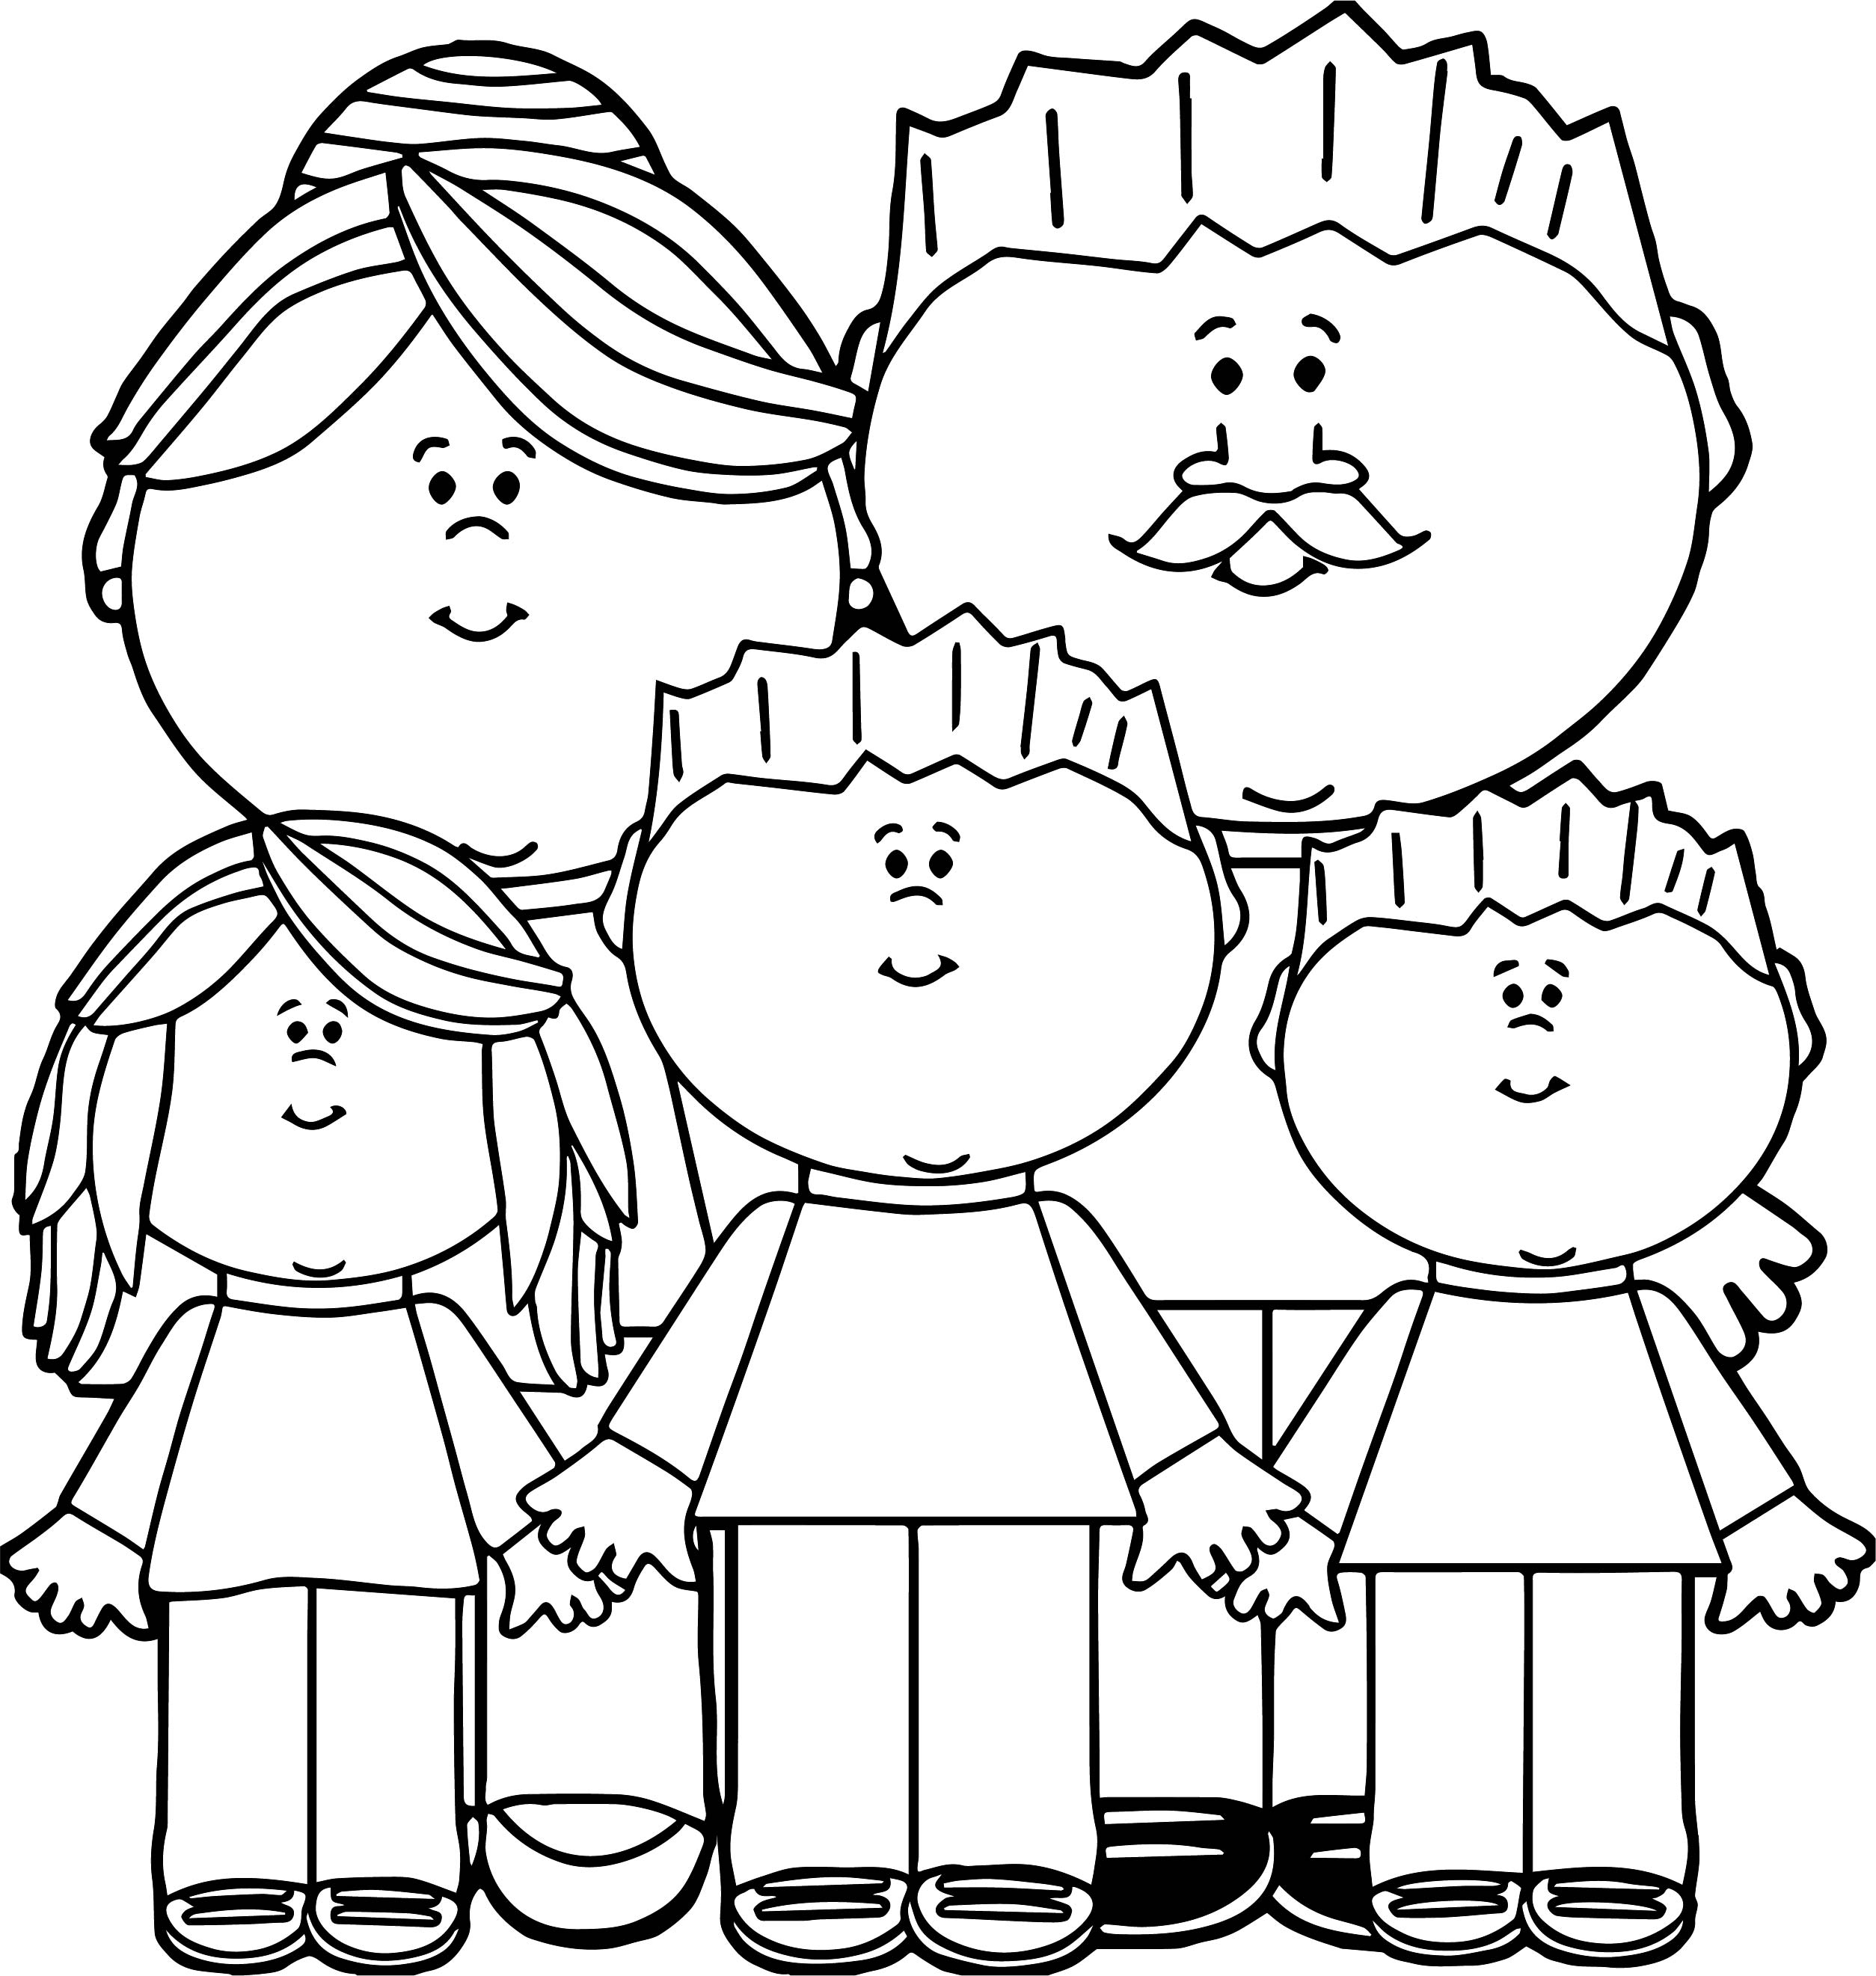 parents and kids family coloring page wecoloringpagecom